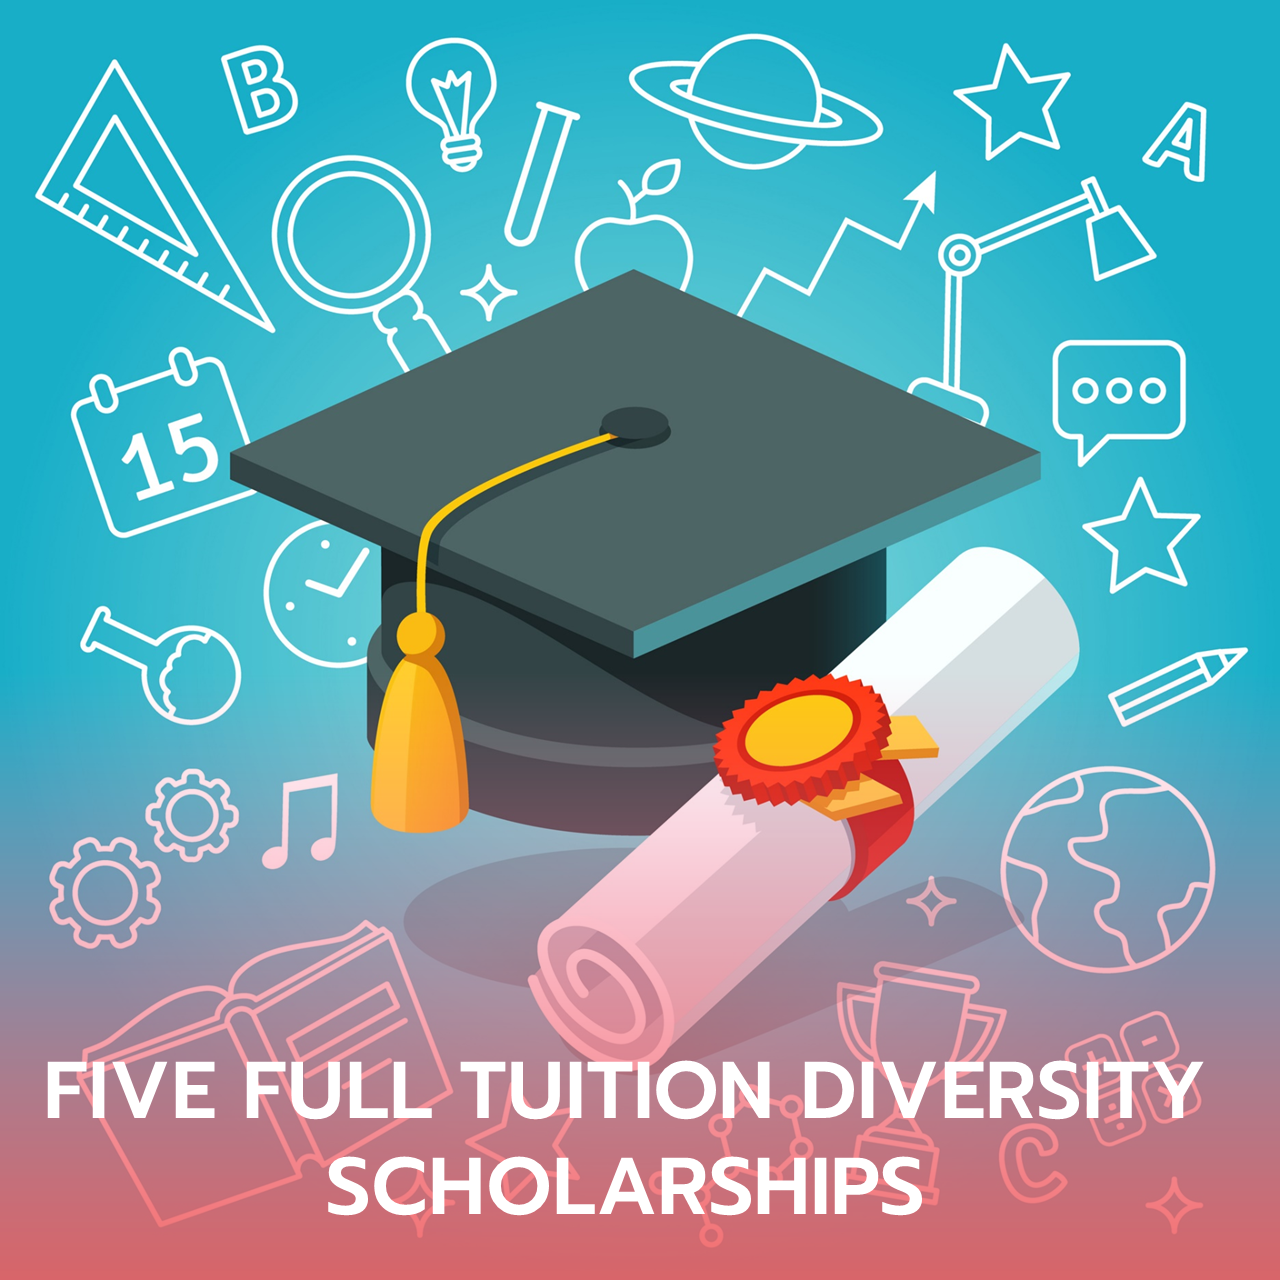 FIVE FULL TUITION DIVERSITY SCHOLARSHIPS